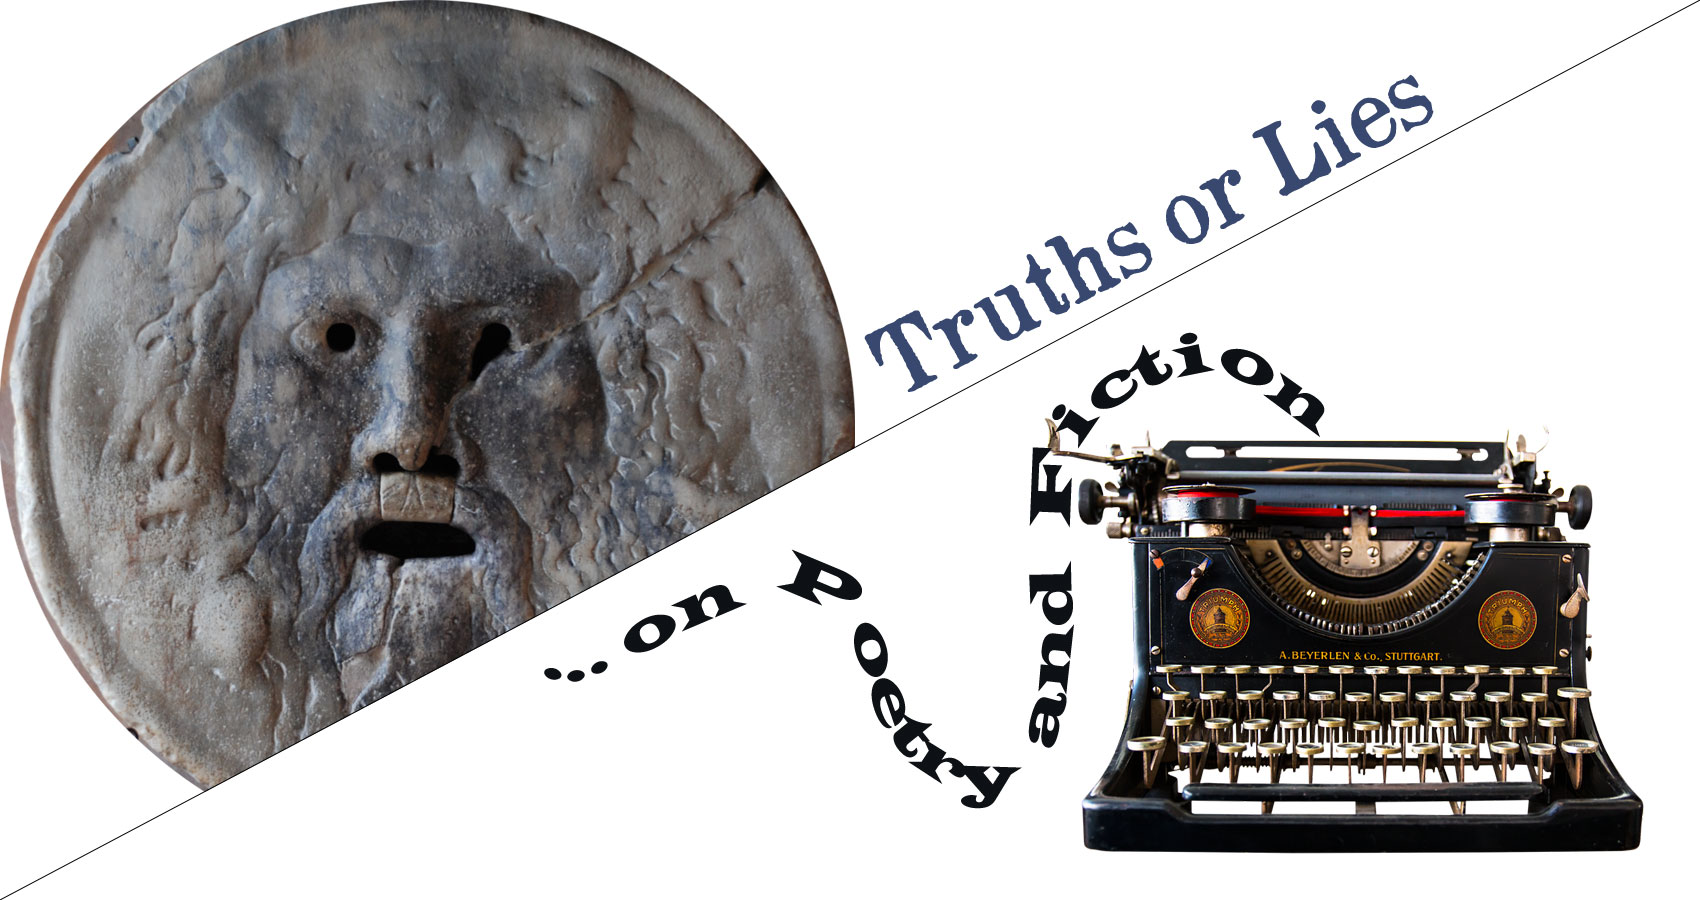 ...on Poetry and Fiction - Truths or Lies written by Phyllis P. Colucci at Spillwords.com